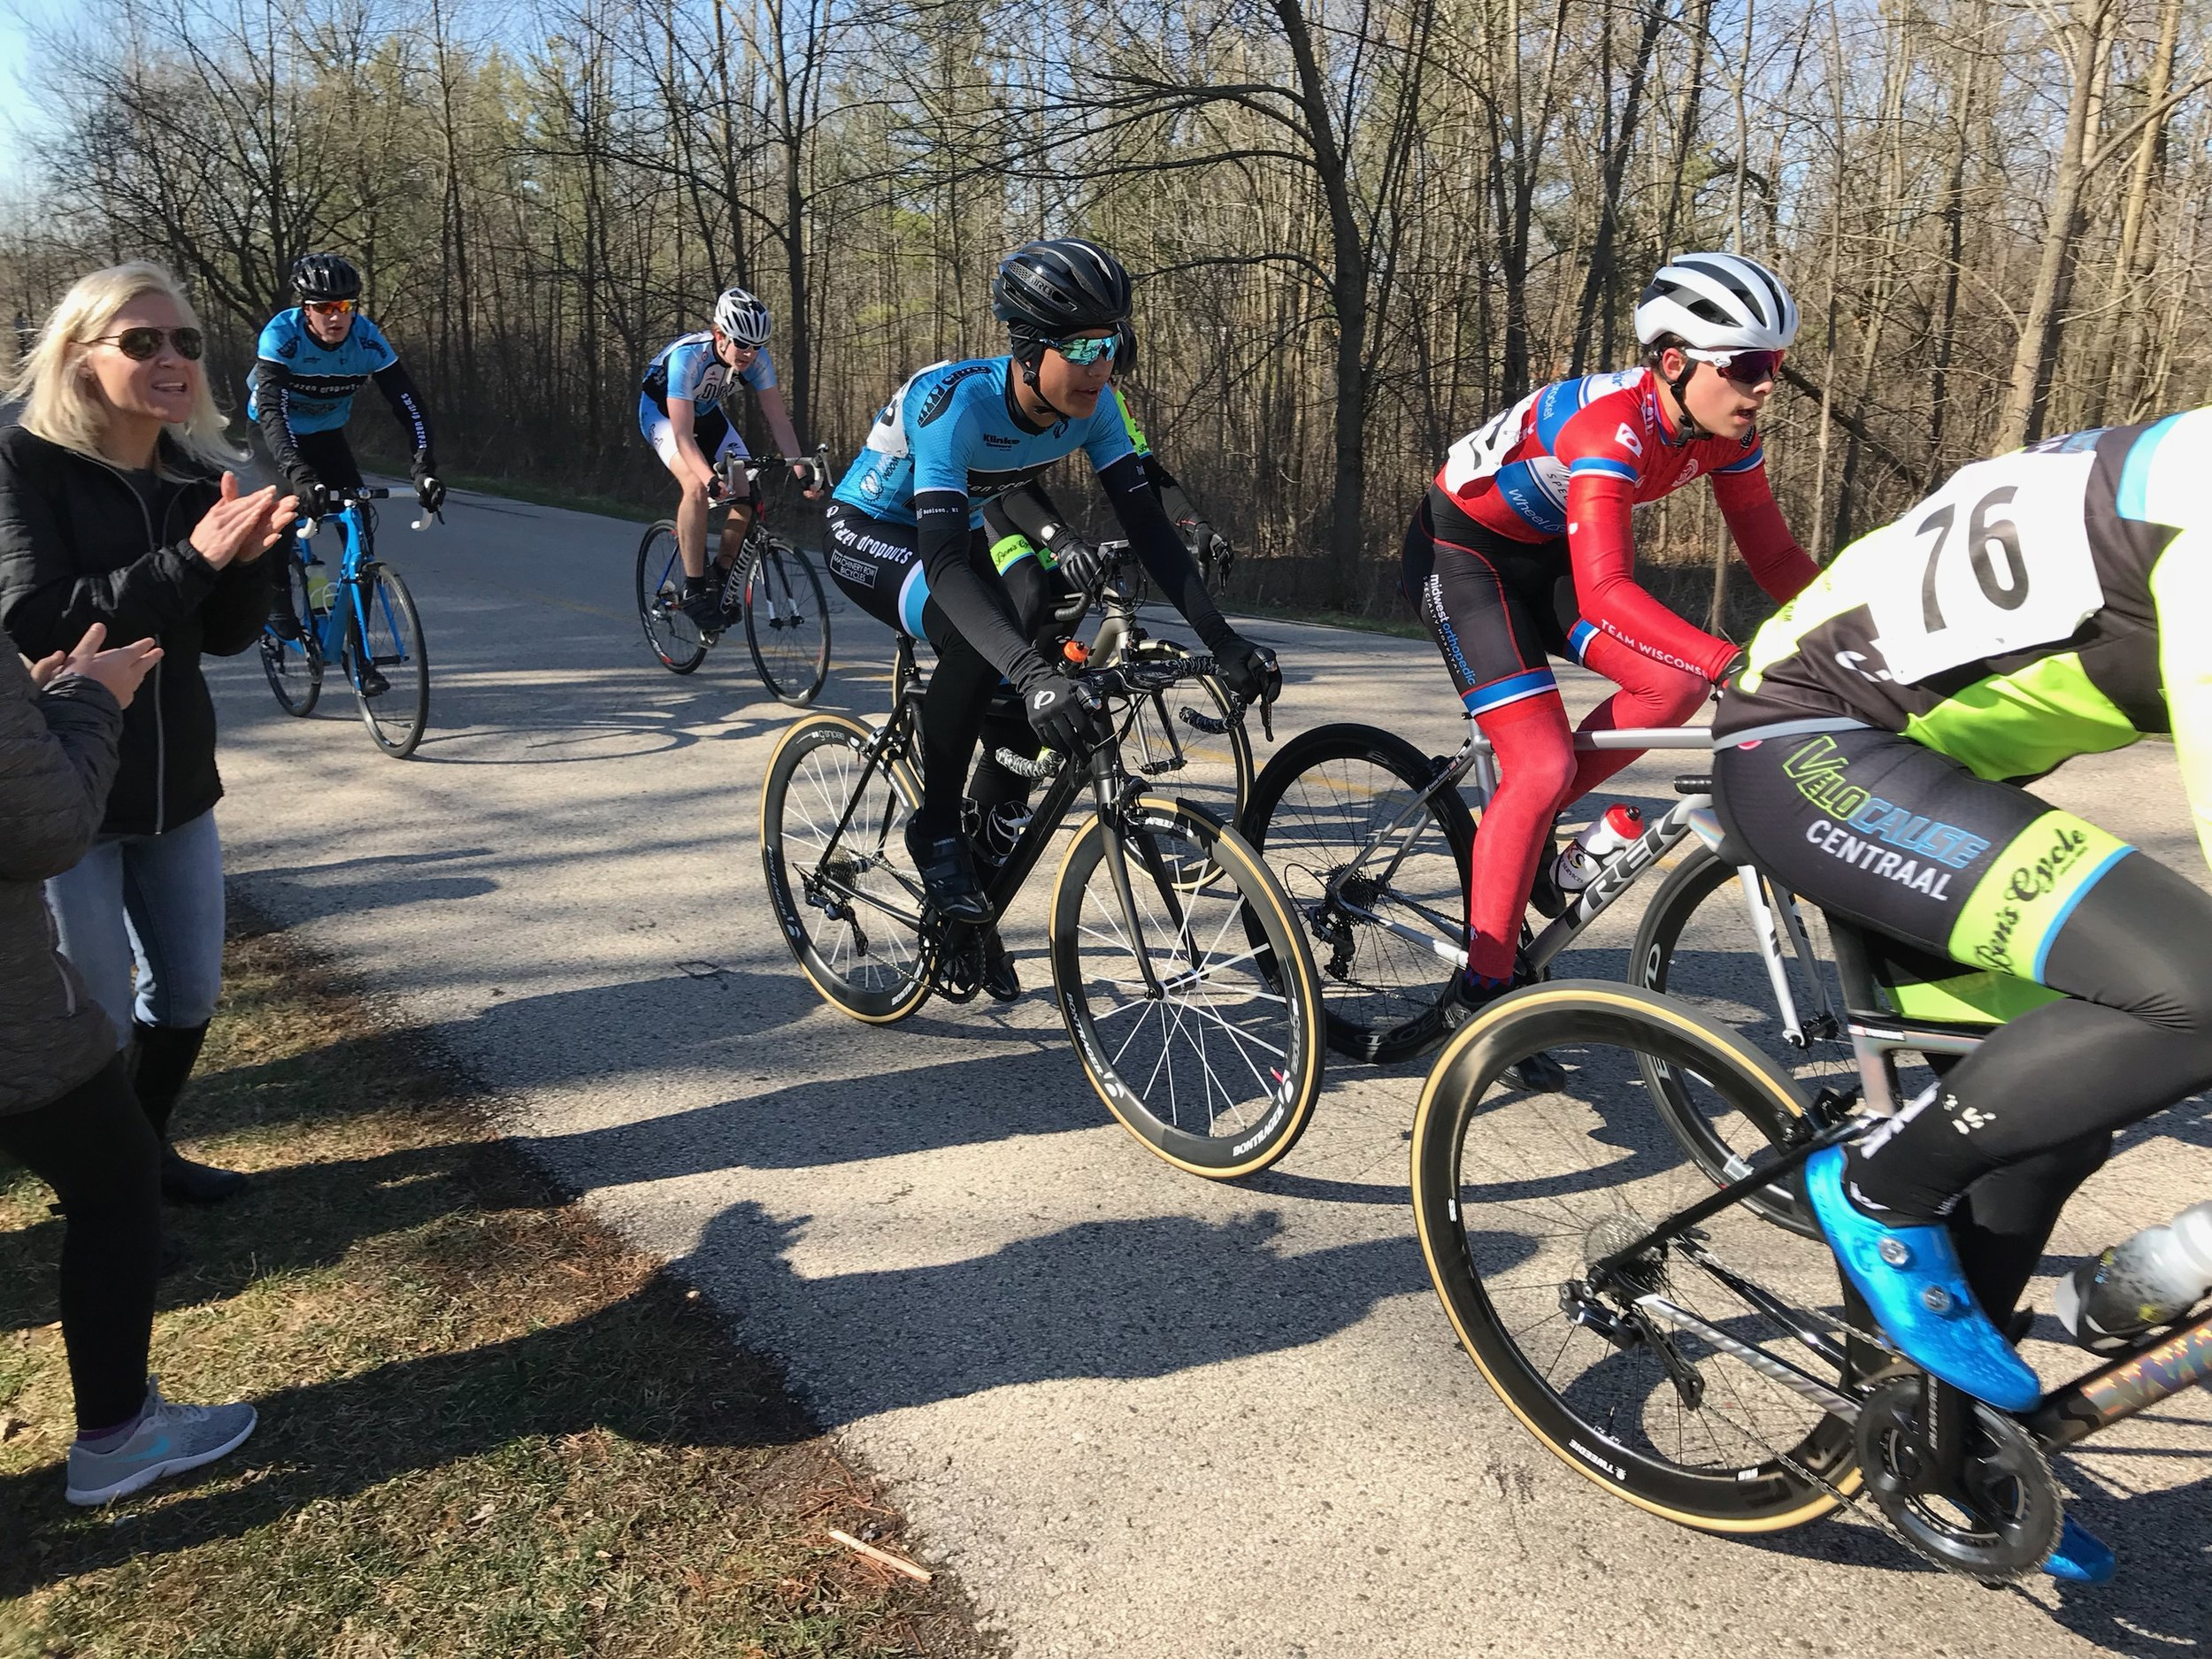 Jamani Bergh patiently waiting to make his move in the Juniors 15-18 race (Photo: Rachel Bergh).